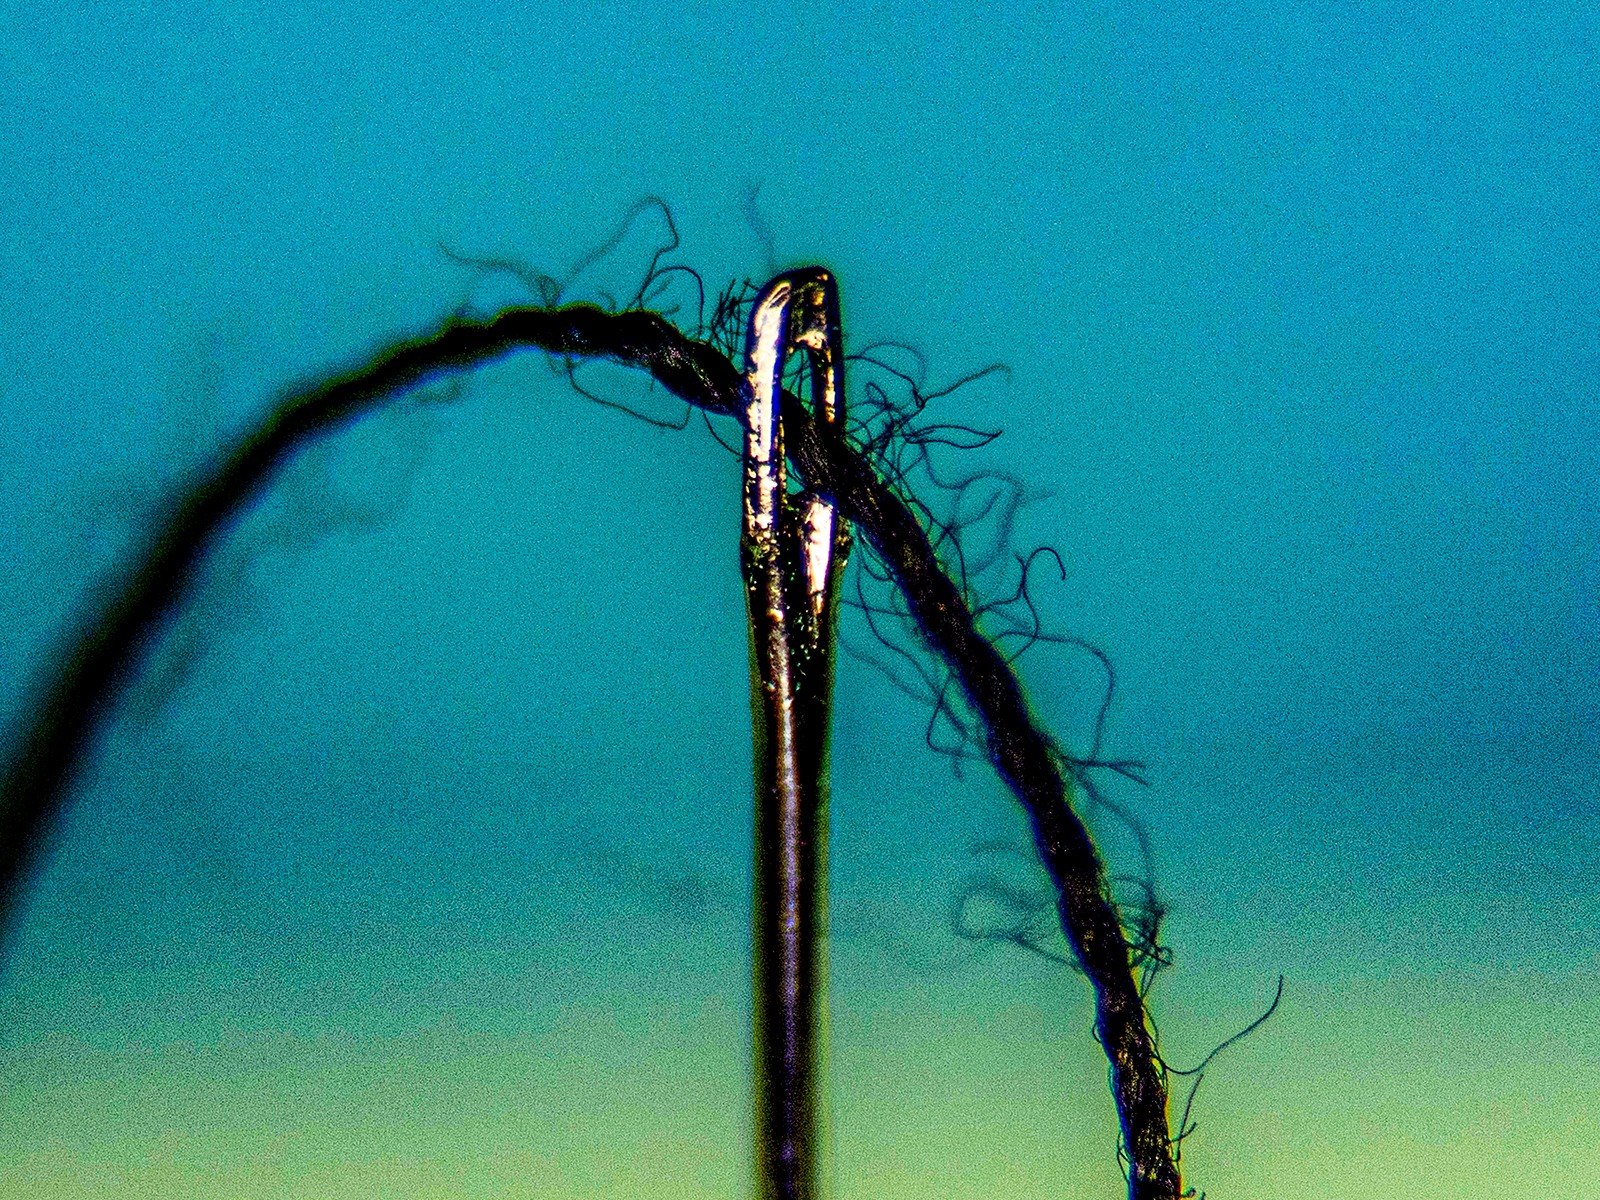 Threaded Needle by Jim Gibson